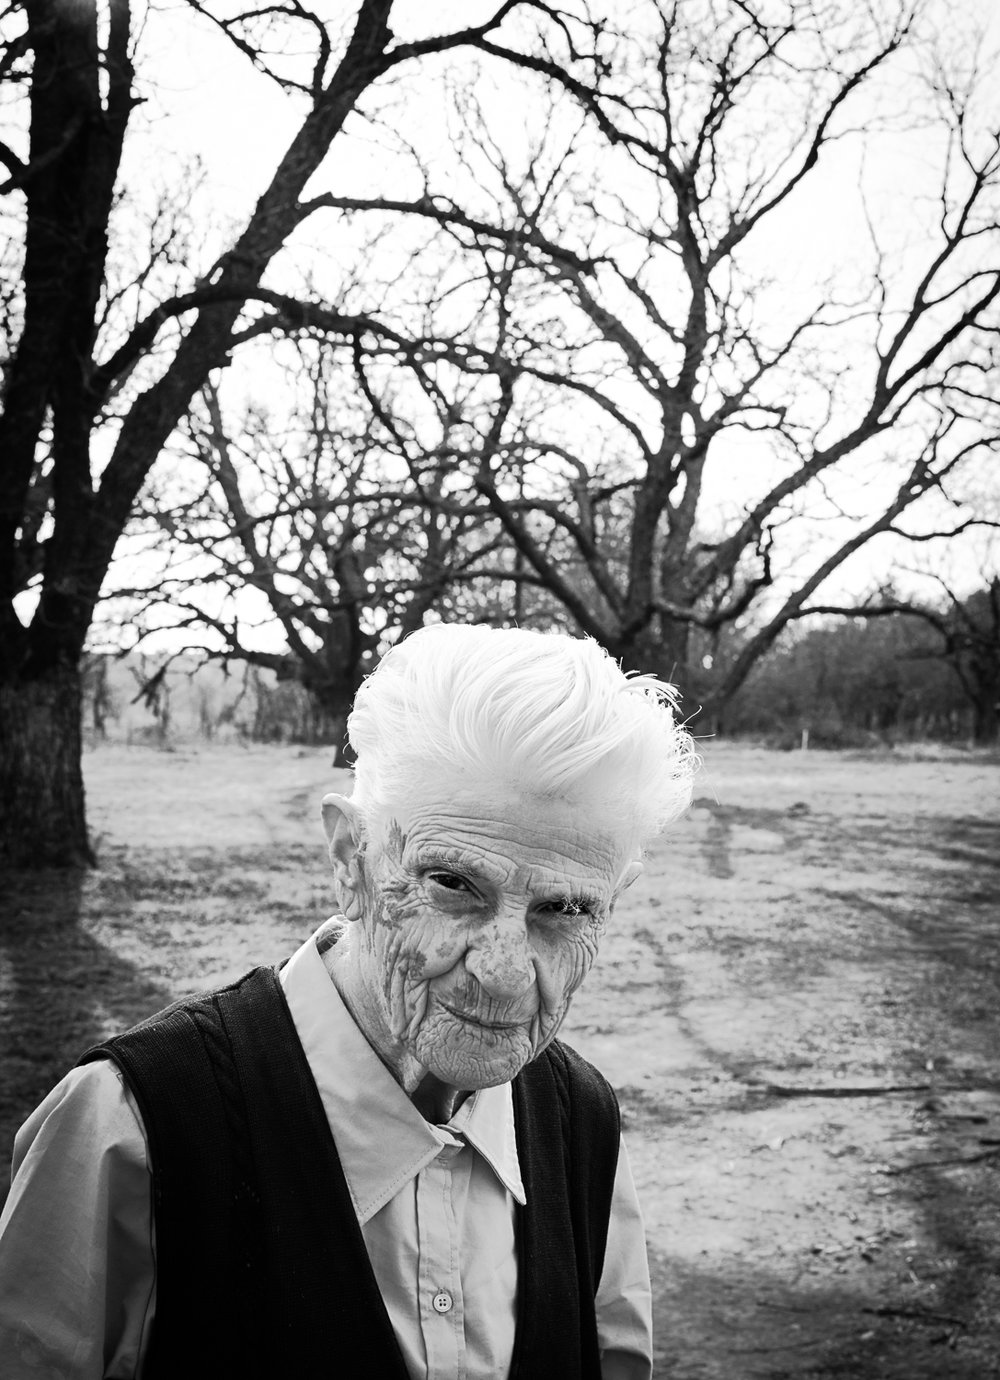 Helen Landers who has late-stage alzheimer's Menard County, Texas, 2017   Made with Hasselblad X1D medium format digital camera